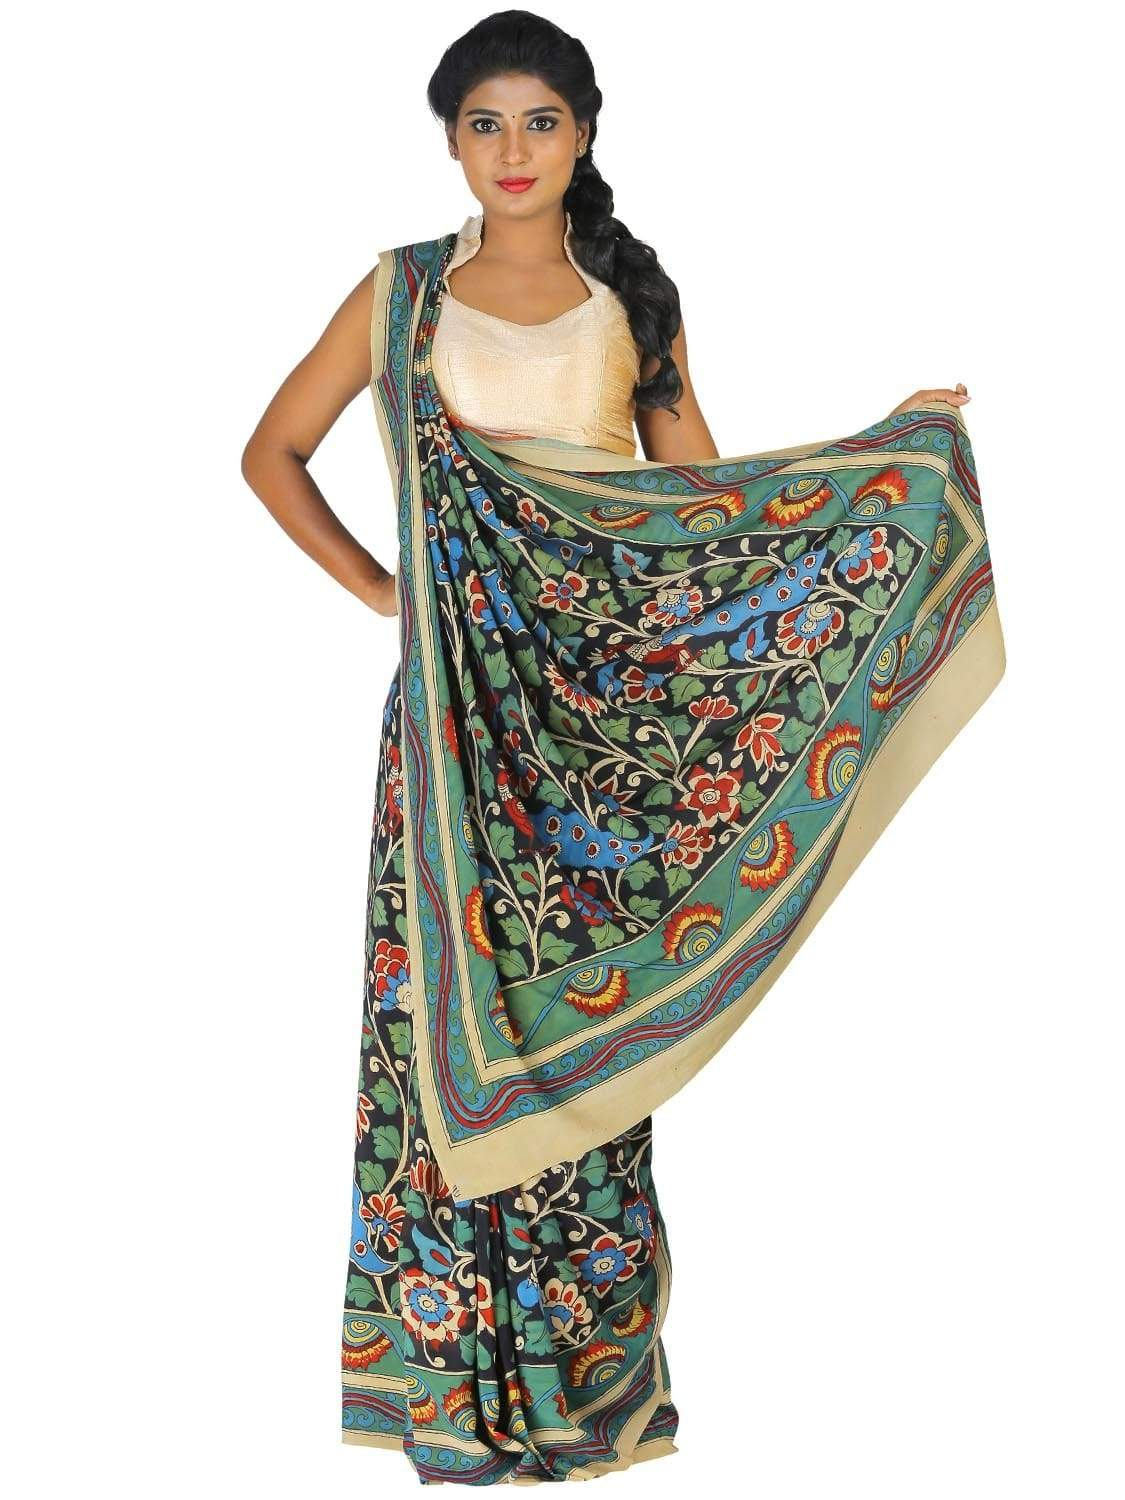 Black Kalamkari Hand Painted Crepe Saree with All Over Floral and Peacock Design kl0137